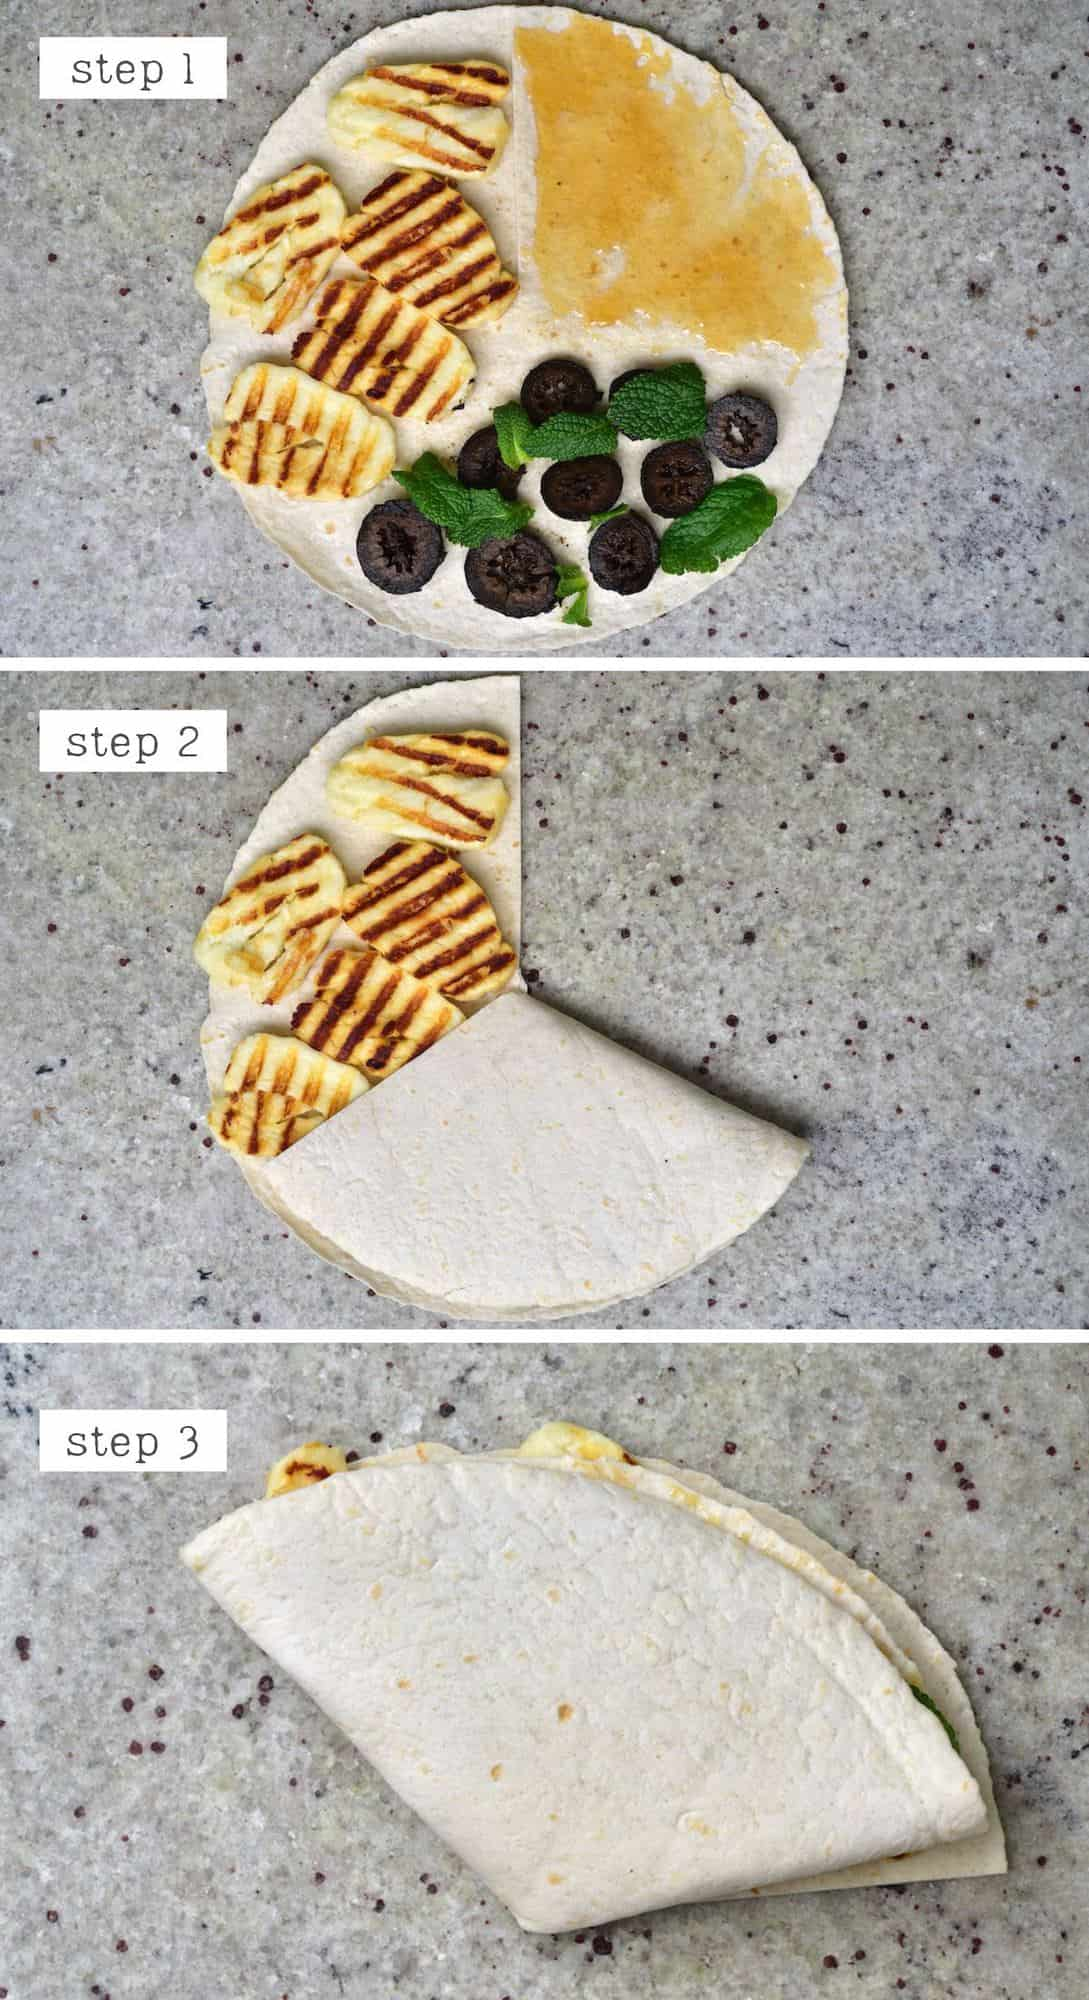 Steps for arranging three ingredients on a tortilla